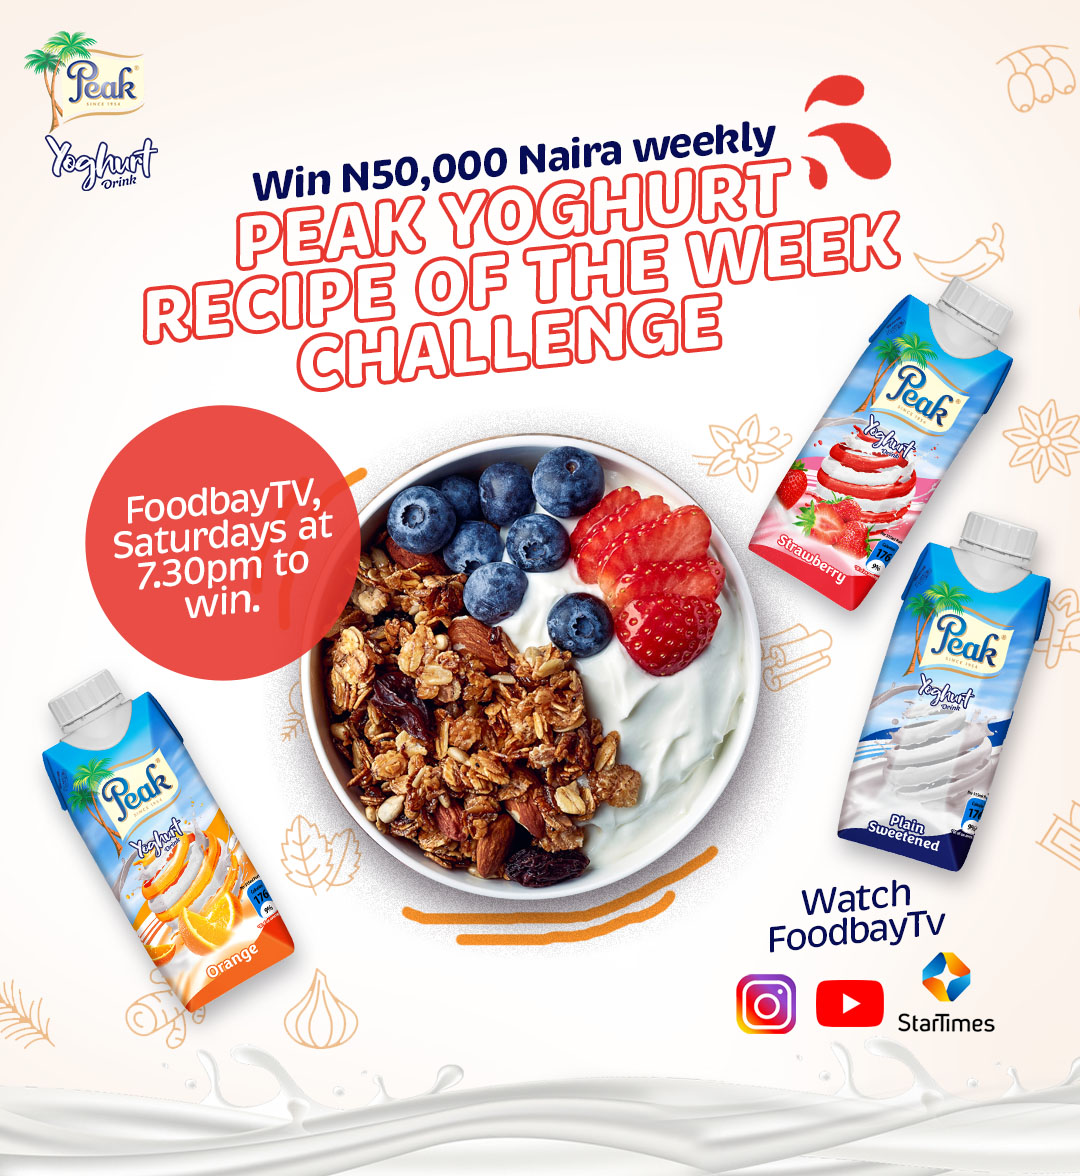 Win N50,000 in Peak Yoghurt Recipe of The Week Challenge.